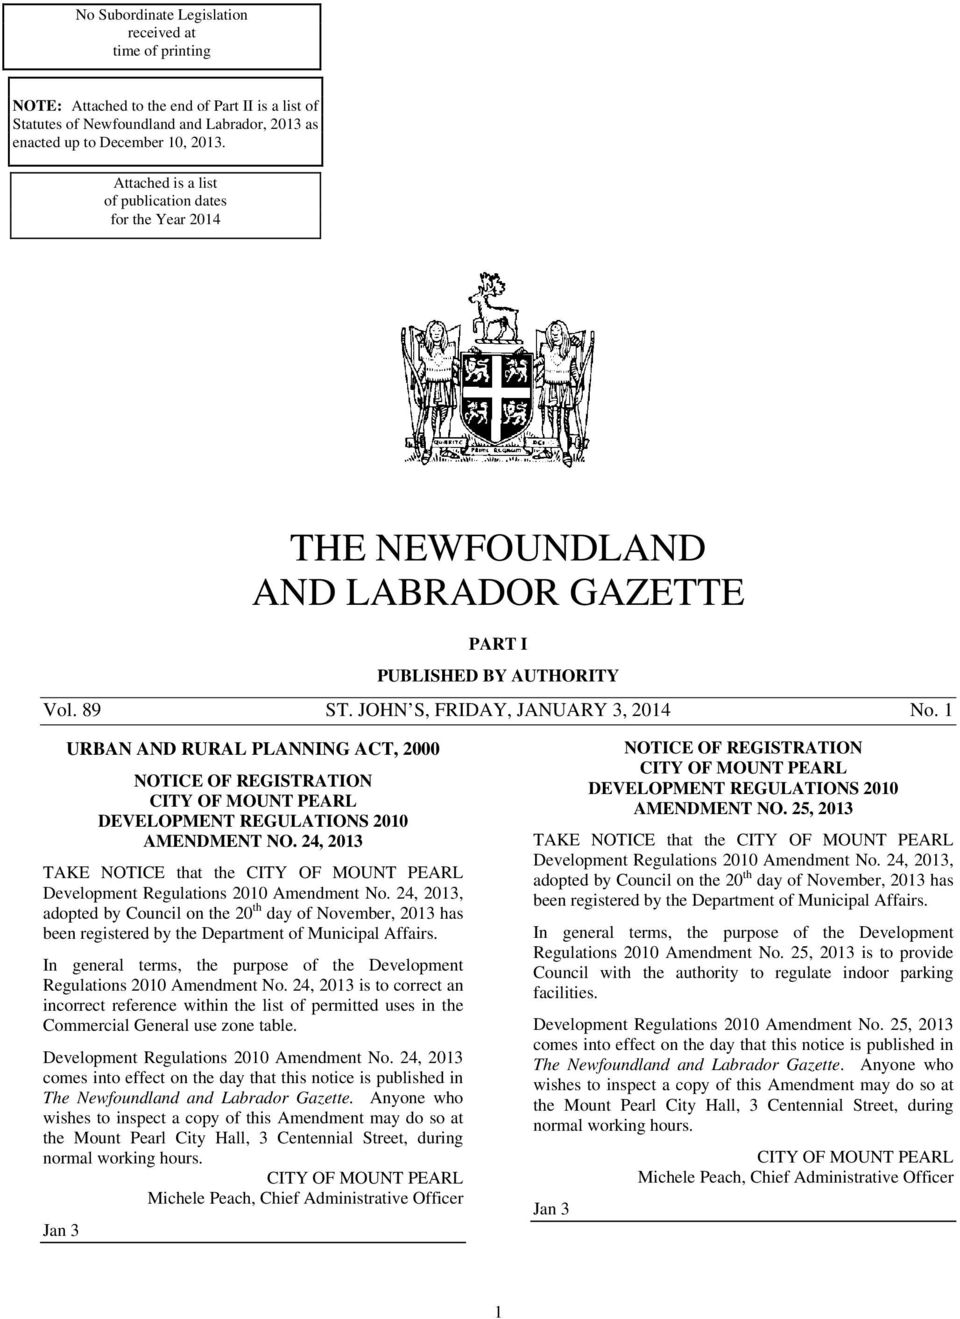 1 URBAN AND RURAL PLANNING ACT, 2000 NOTICE OF REGISTRATION CITY OF MOUNT PEARL DEVELOPMENT REGULATIONS 2010 AMENDMENT NO.